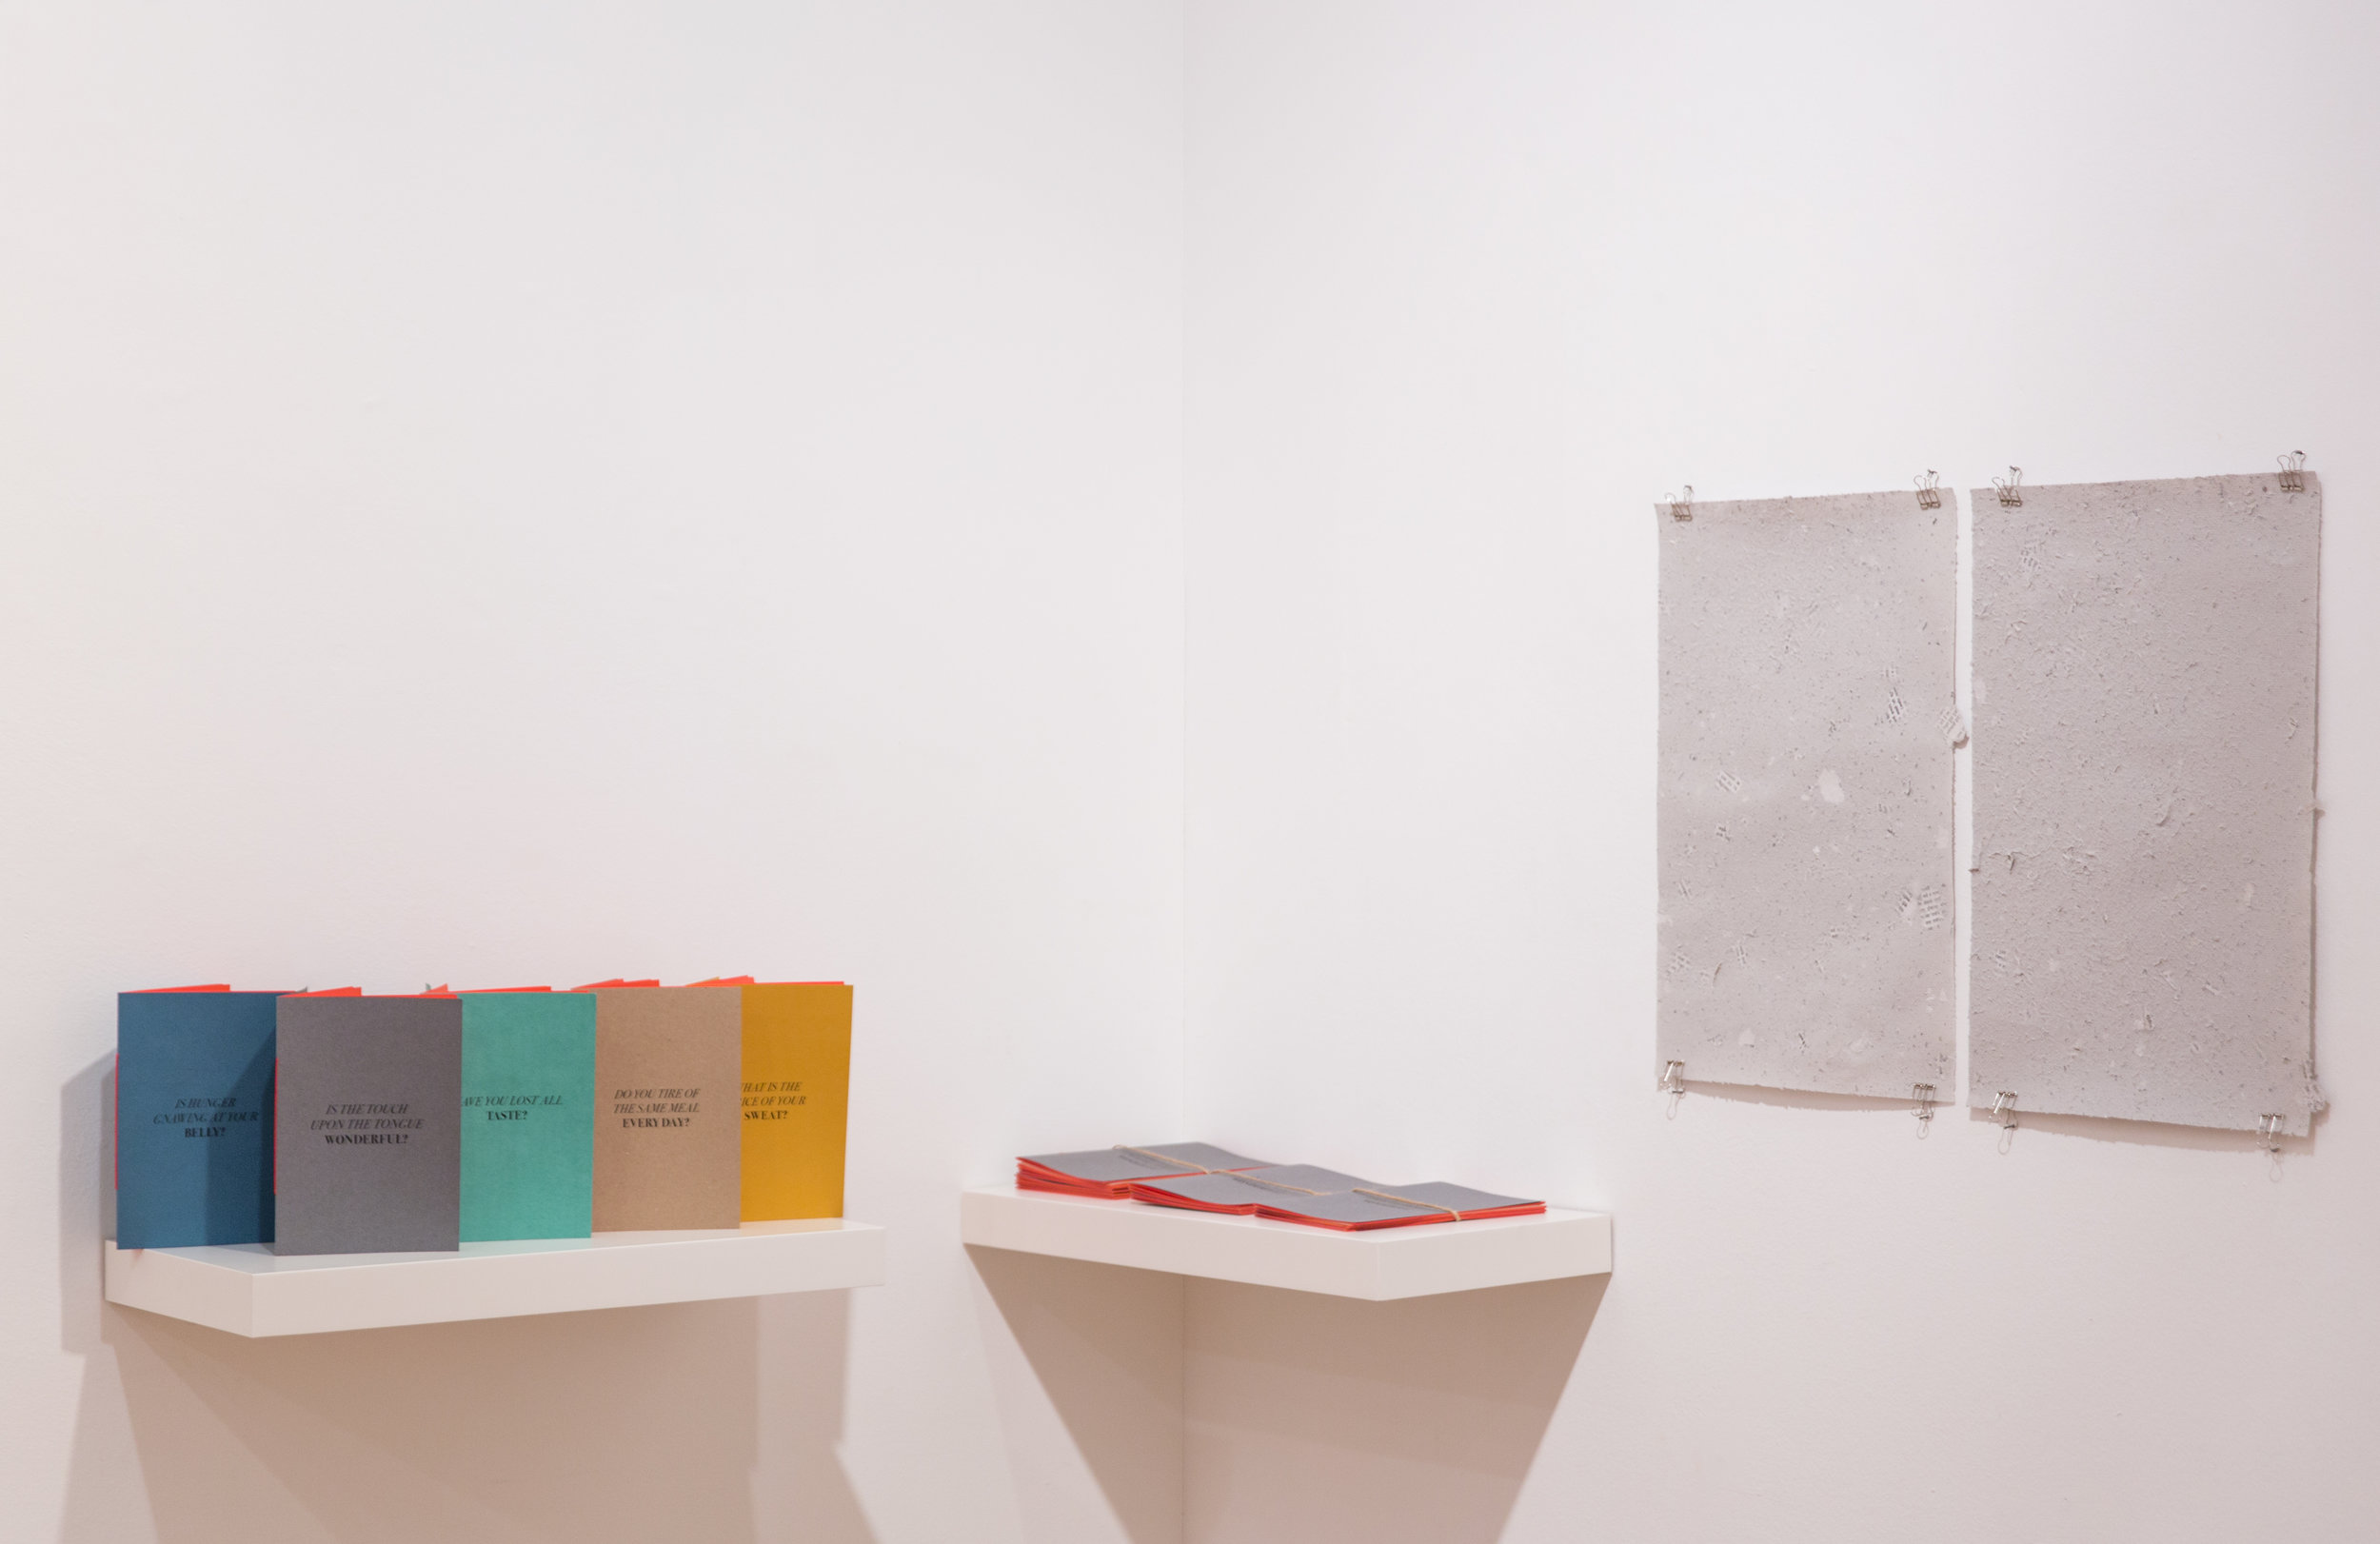 within_ without Asia House Gallery, 2018. image courtesy the artist and indigo+madder, London1.jpg